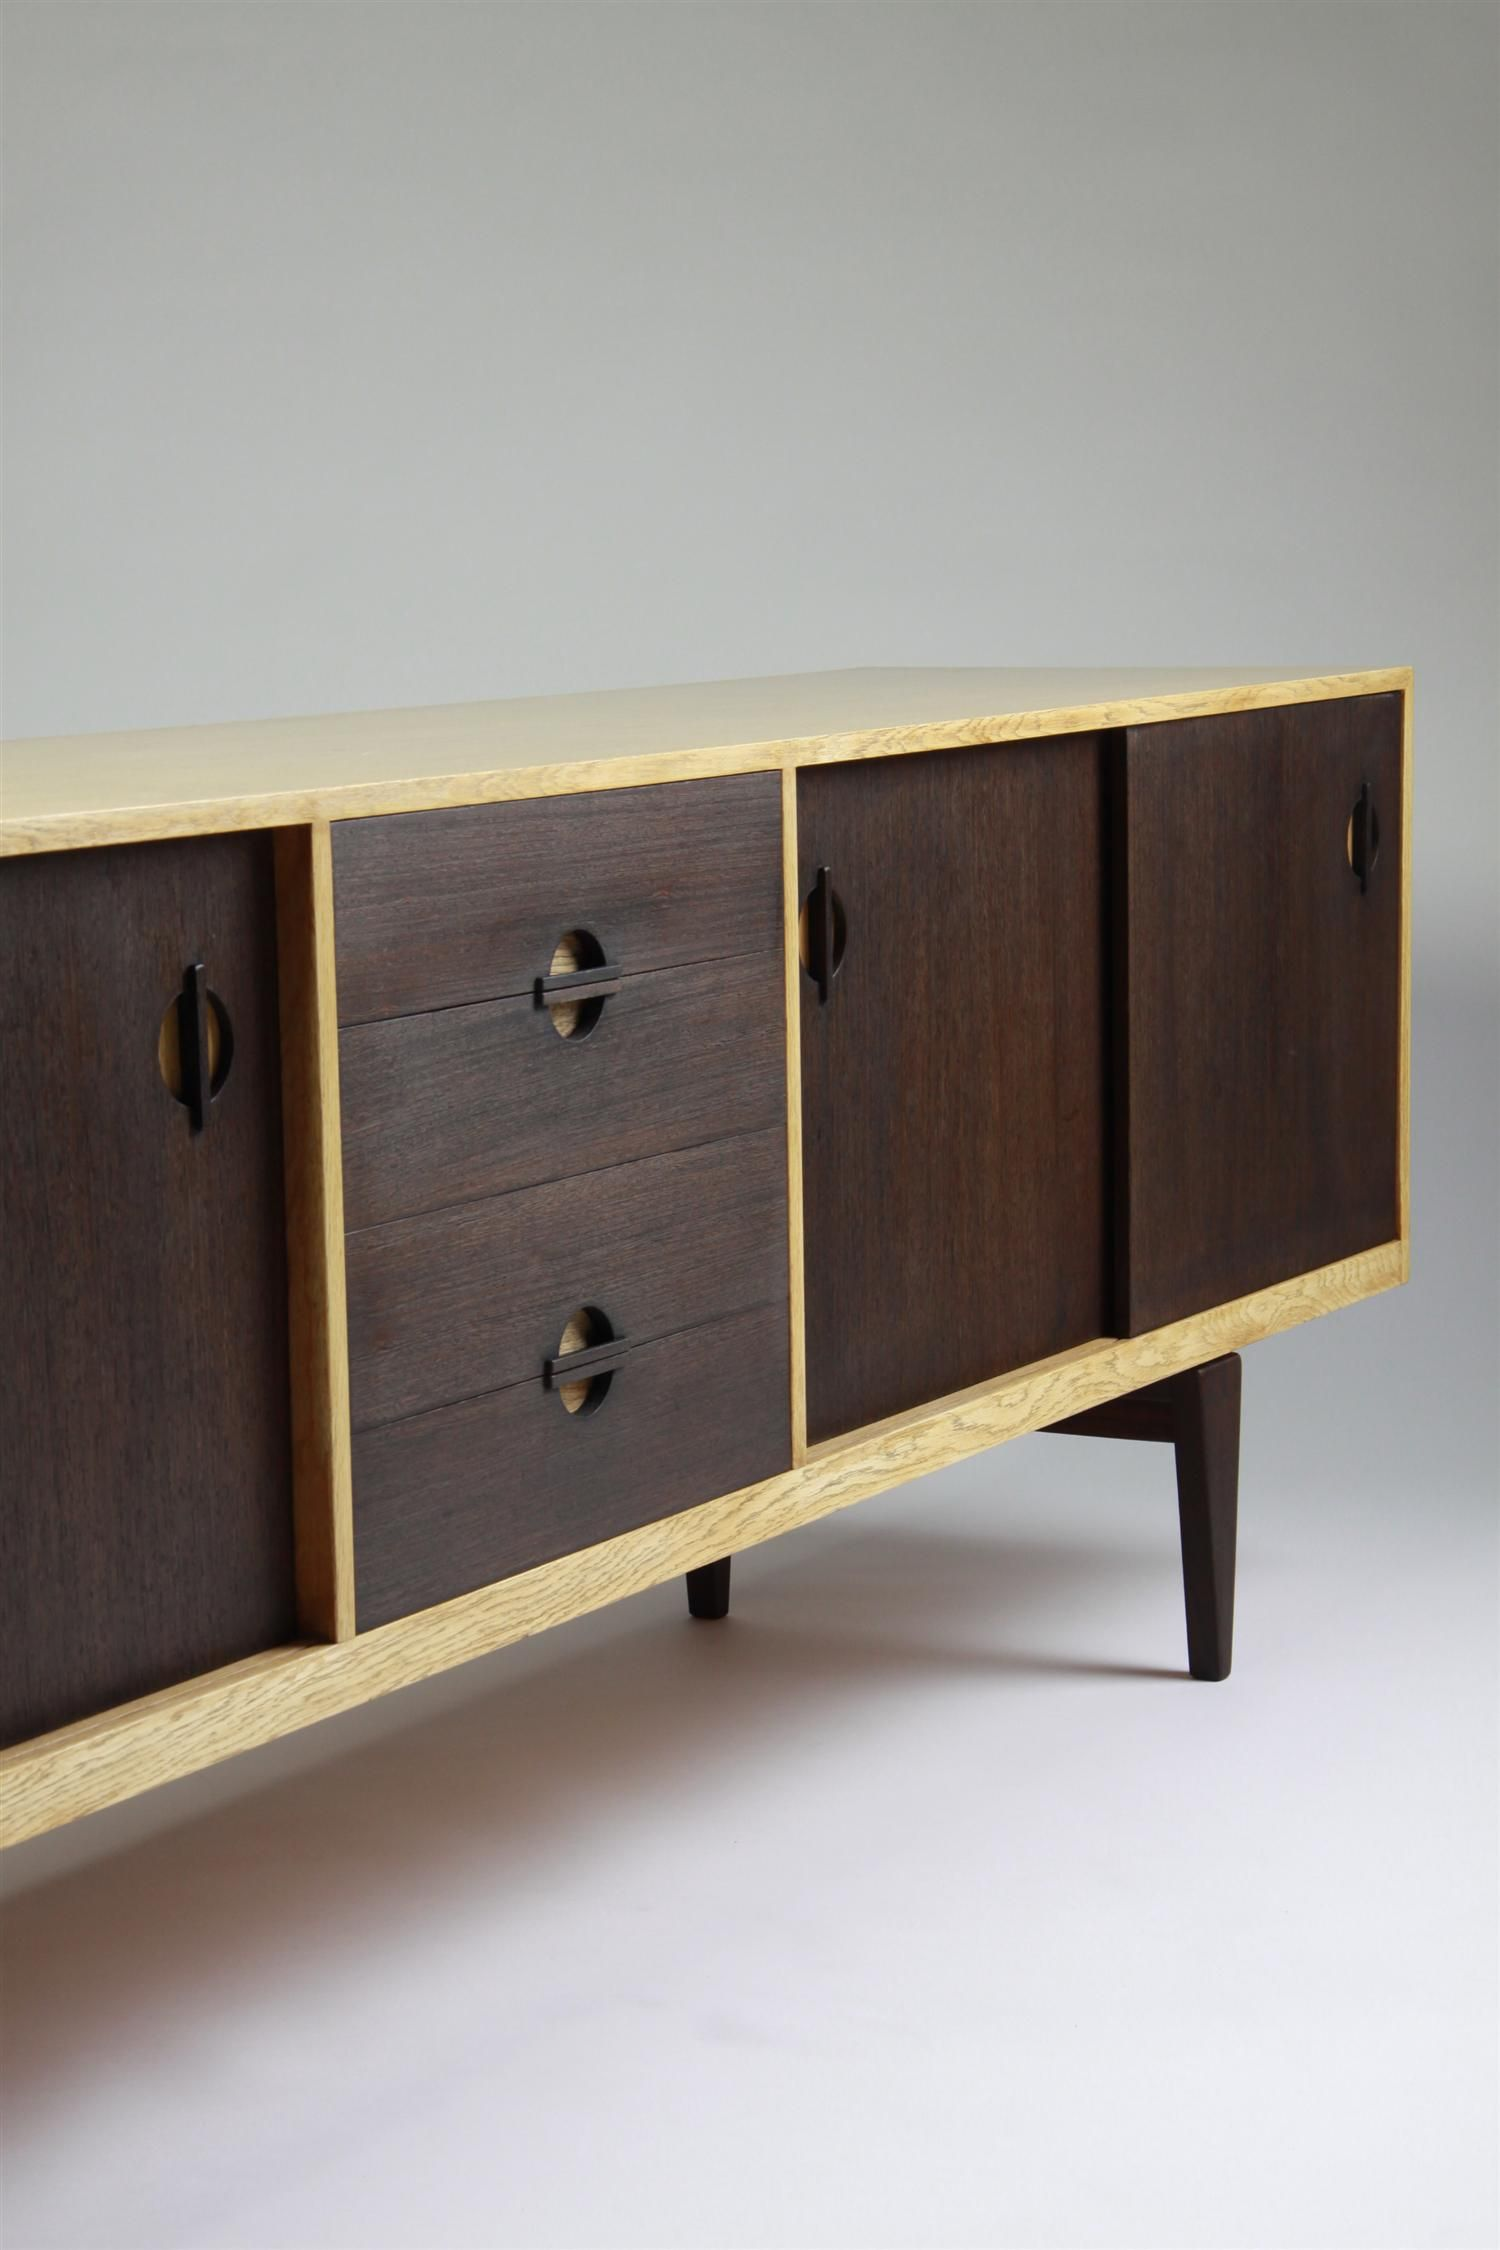 32 Original Mid Century Sideboards You Gonna Love Holz Design Schoner Wohnen